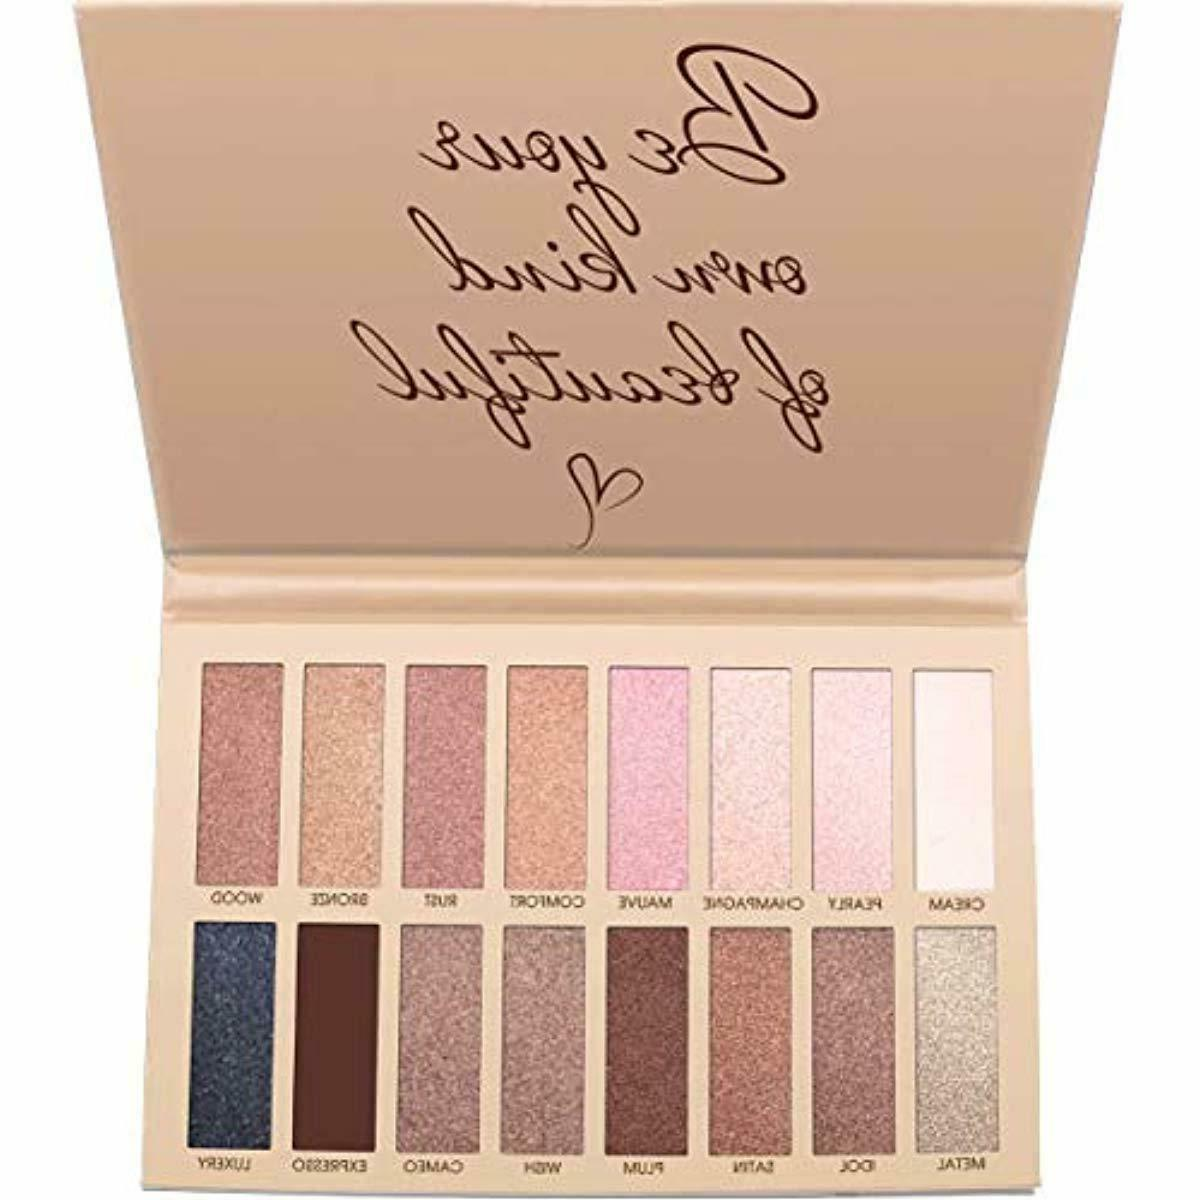 Best Pro Eyeshadow Palette Makeup - Matte Shimmer 16 Colors